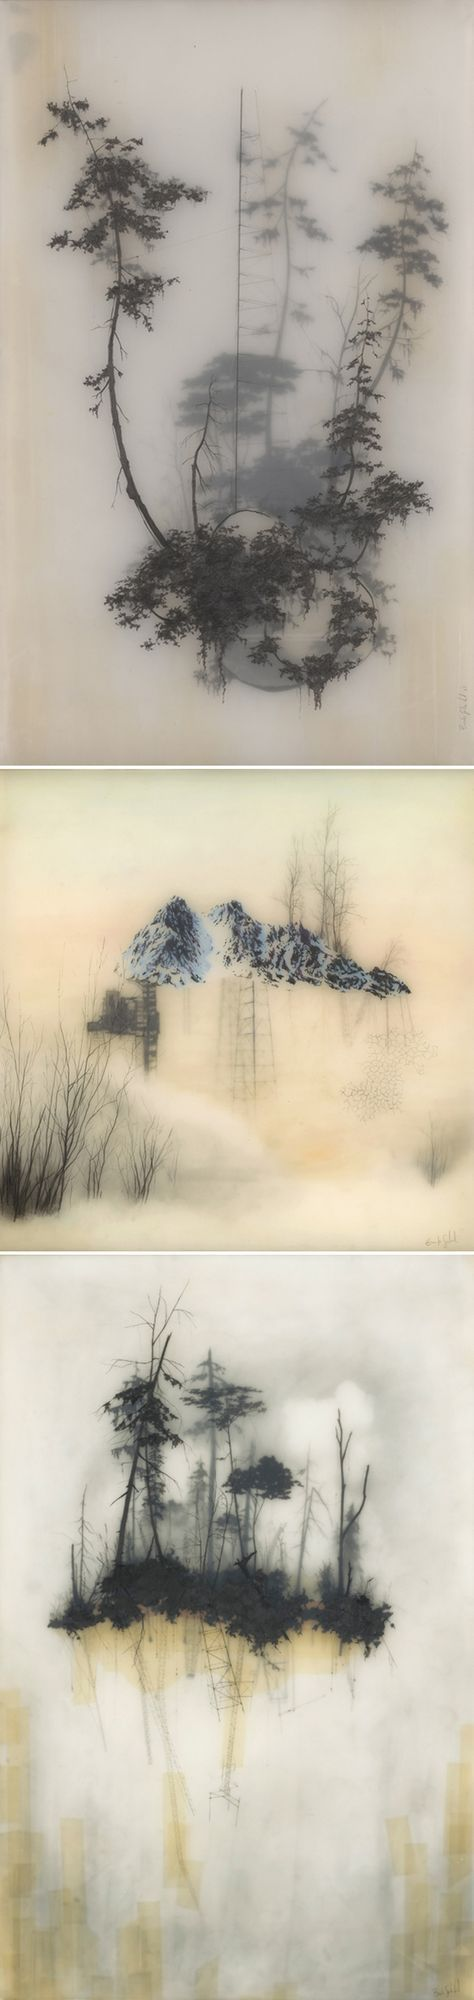 brooks salzwedel | The Jealous Curator | Bloglovin'